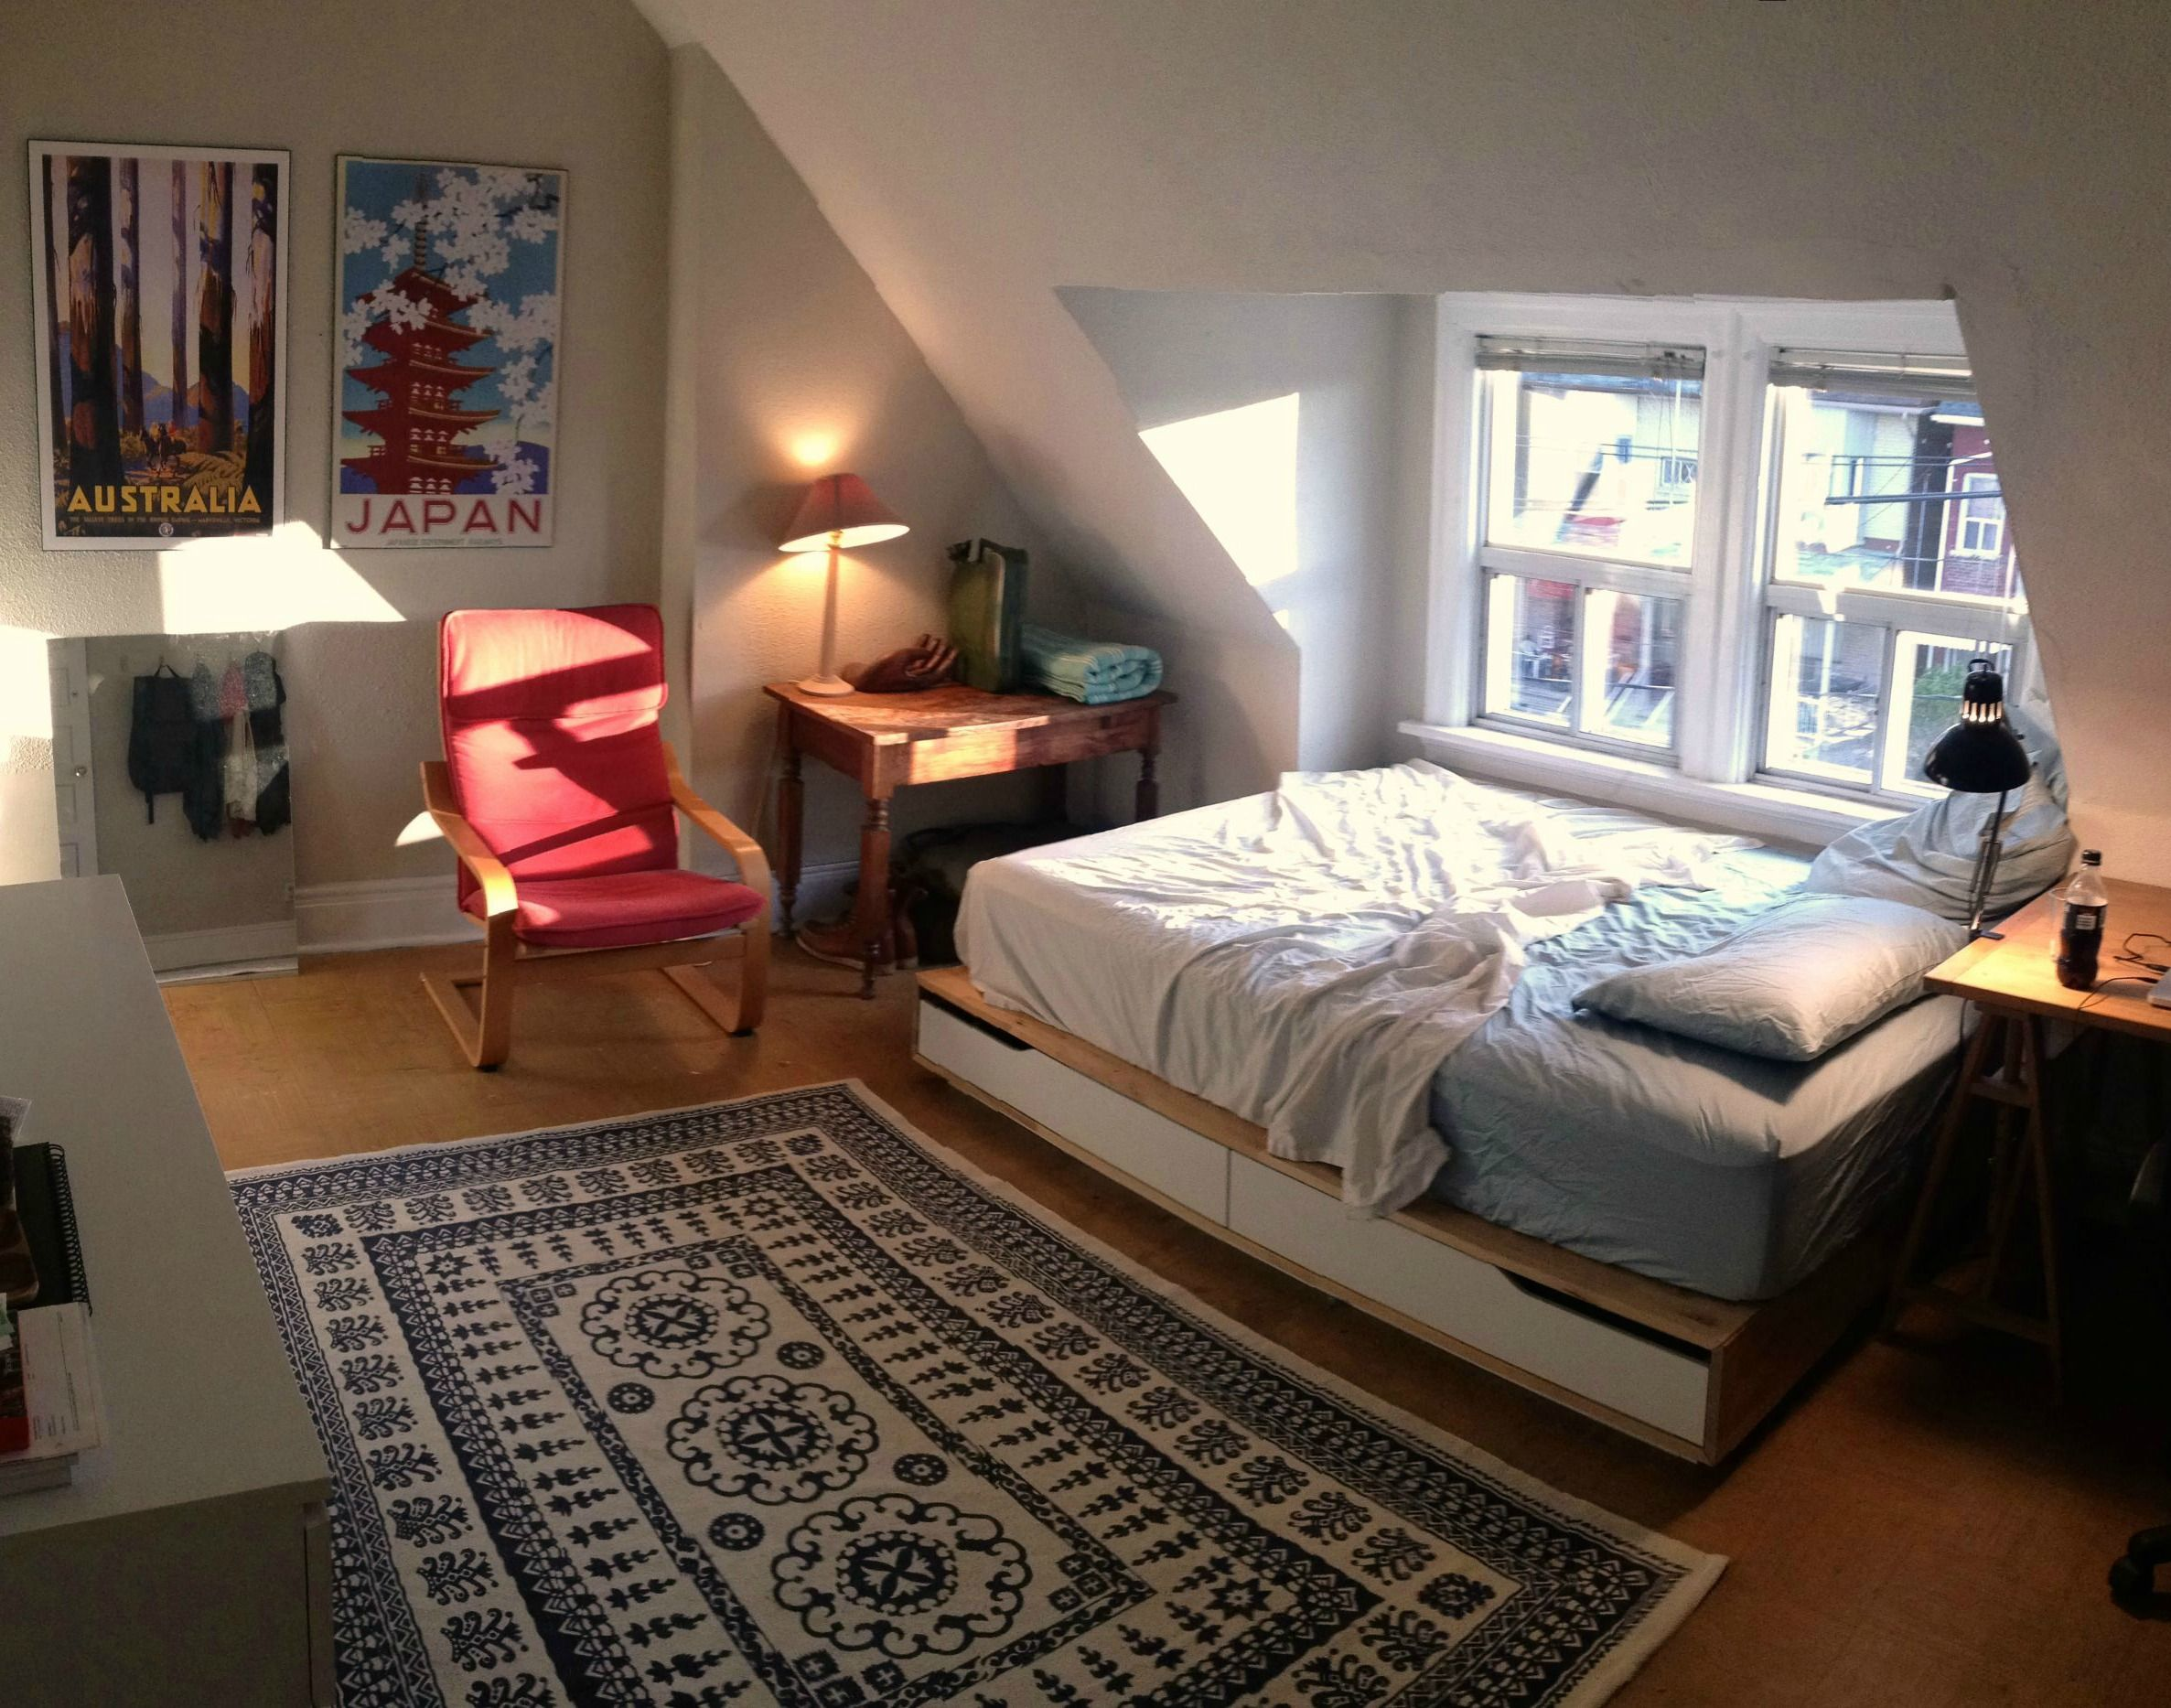 90 cozy rooms youll never want to leave uni bedroomapartment bedroomsstudent - Apartment Bedroom Decorating Ideas For College Students